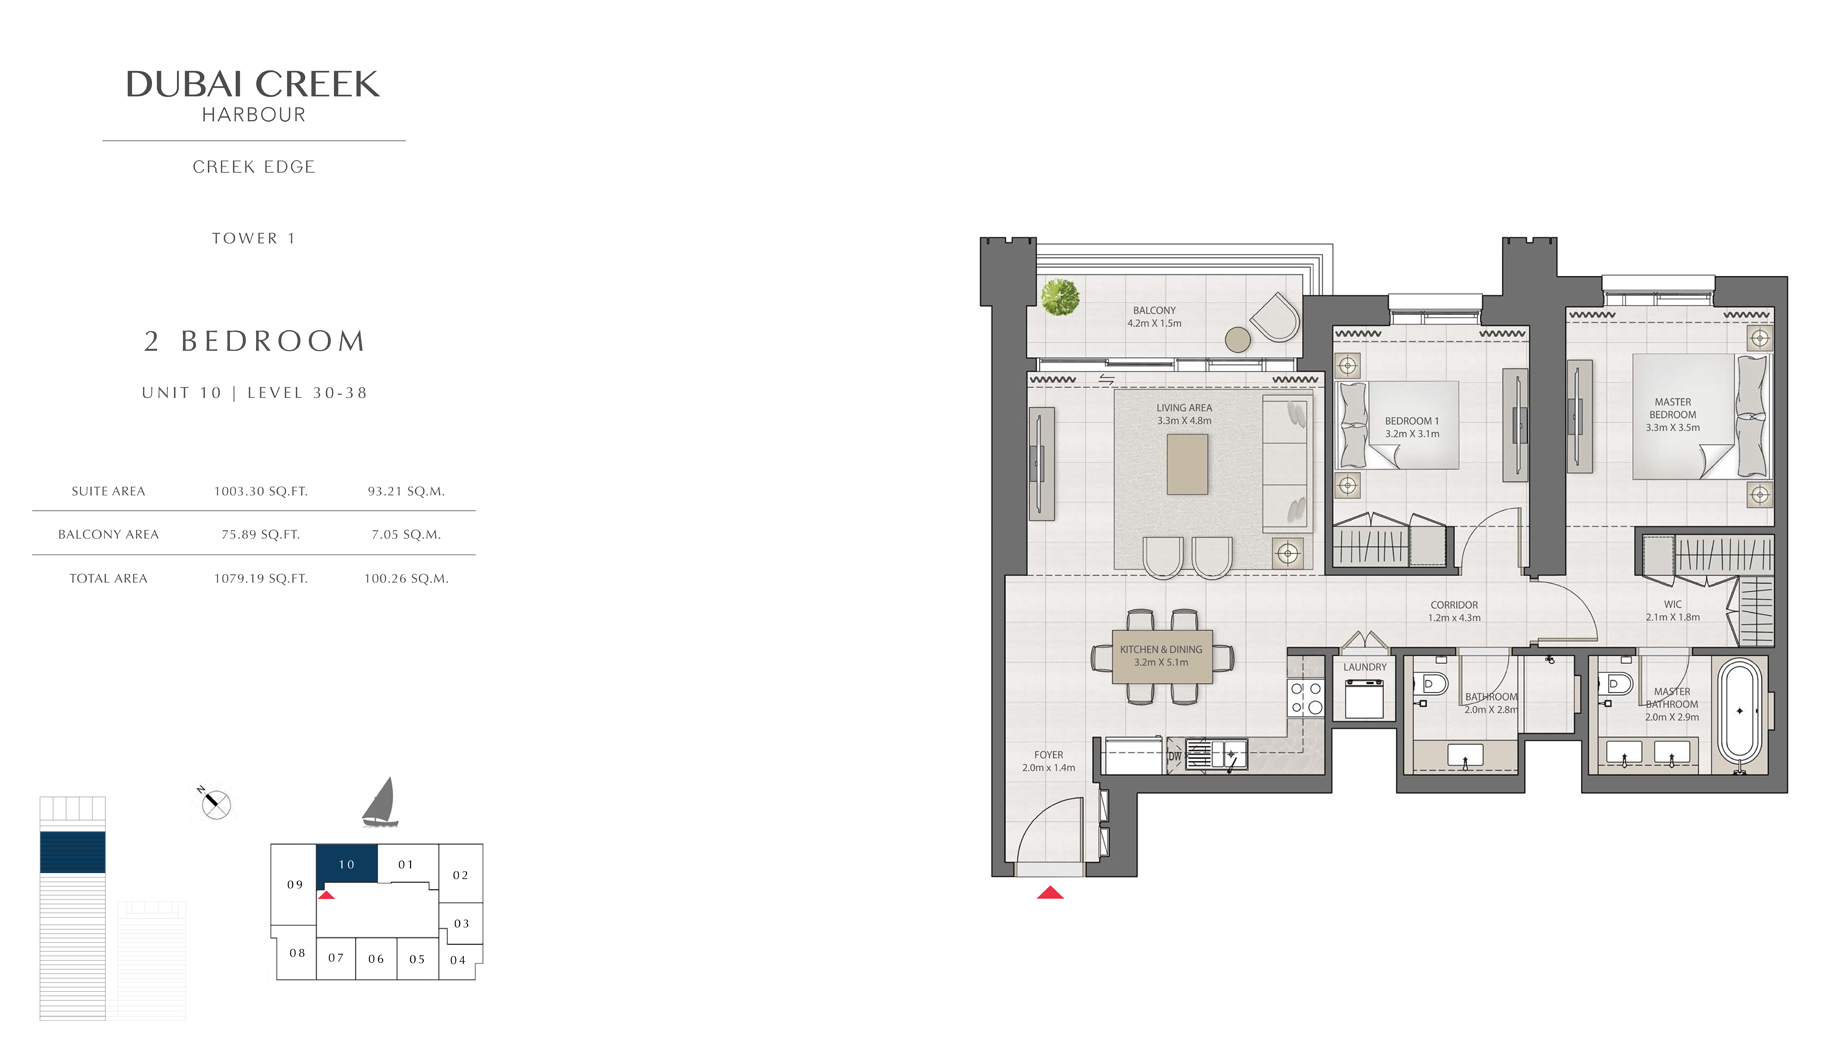 2 Bedroom Tower 1 Unit 10 Level 30-38 Size 1079 sq.ft